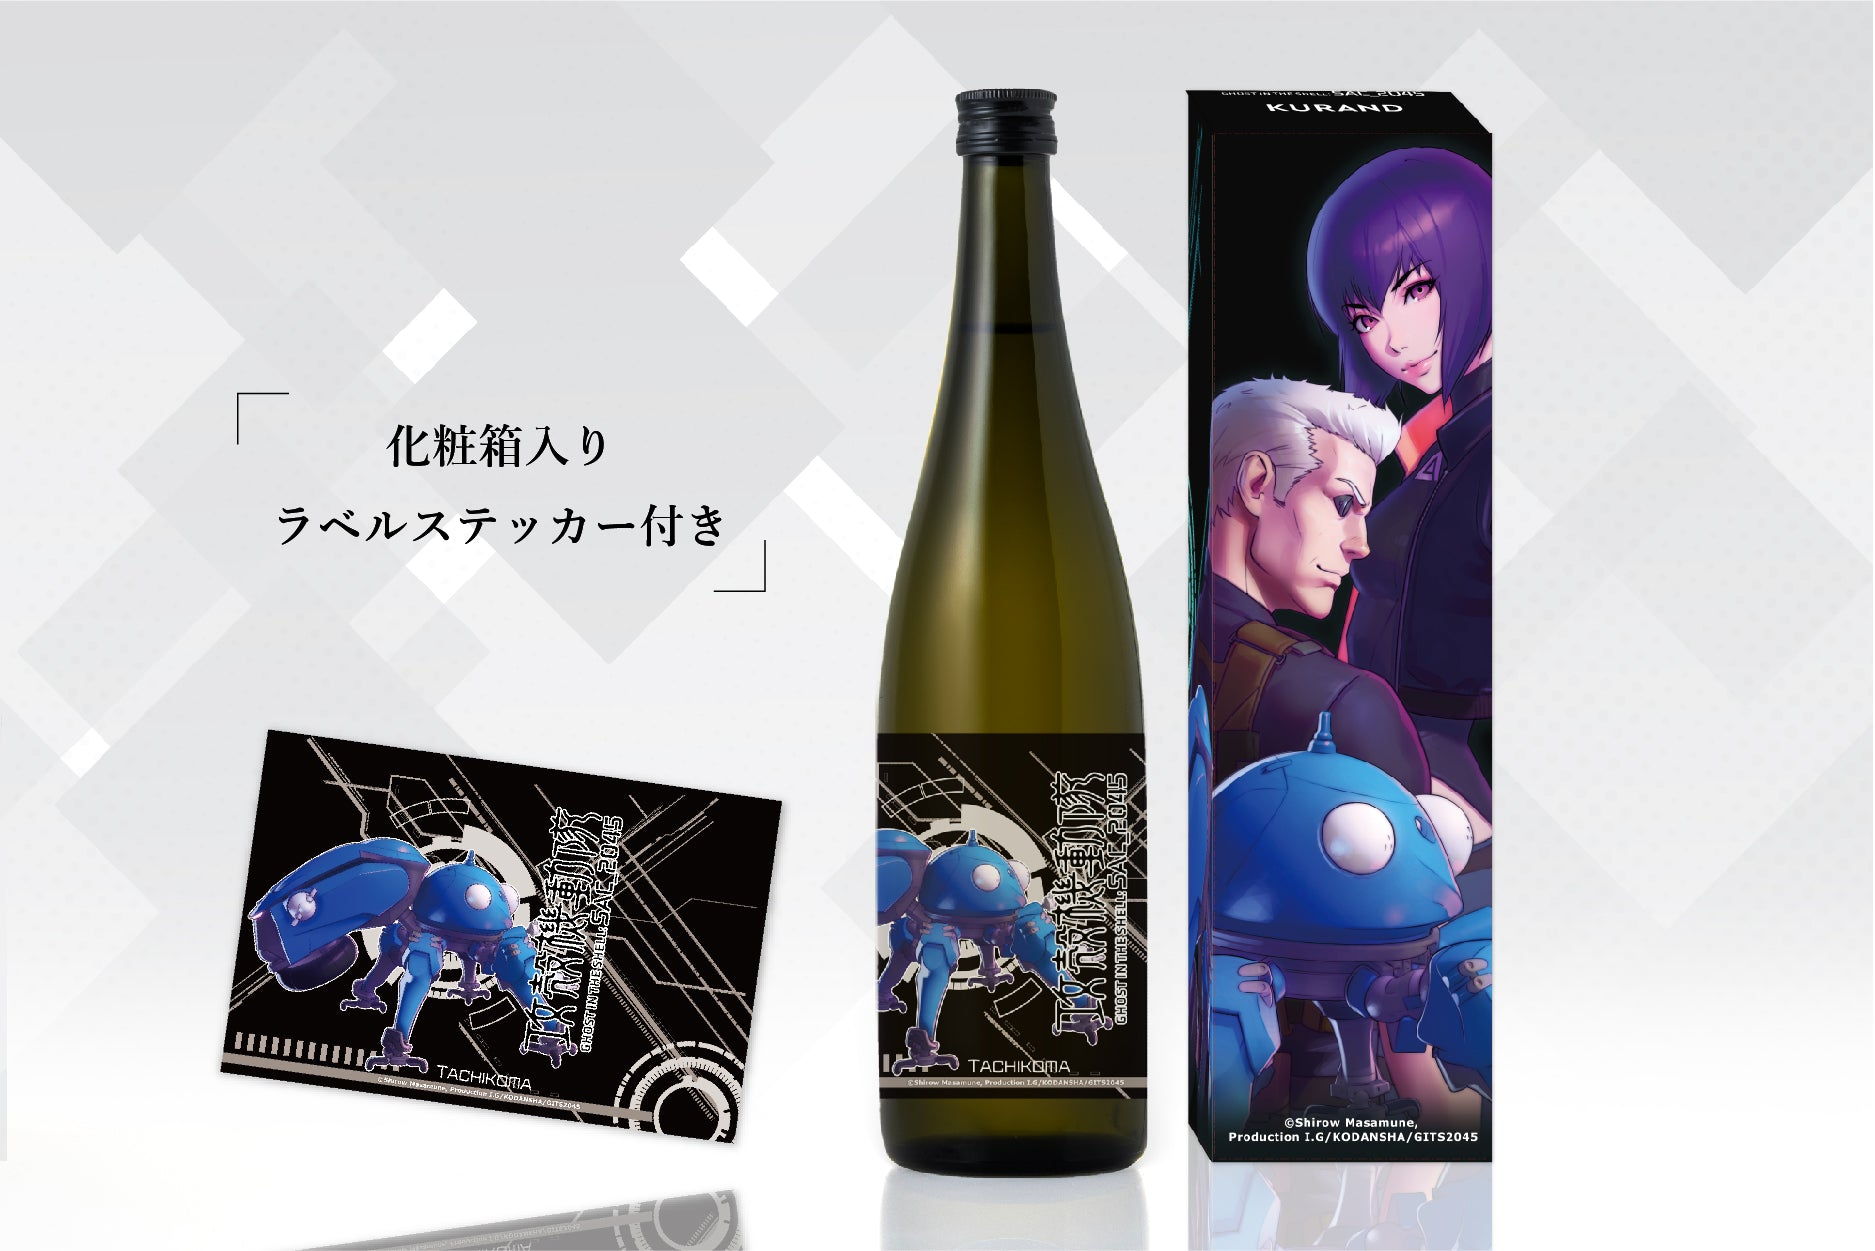 GHOST IN THE SHELL: SAC_2045 - タチコマver. -